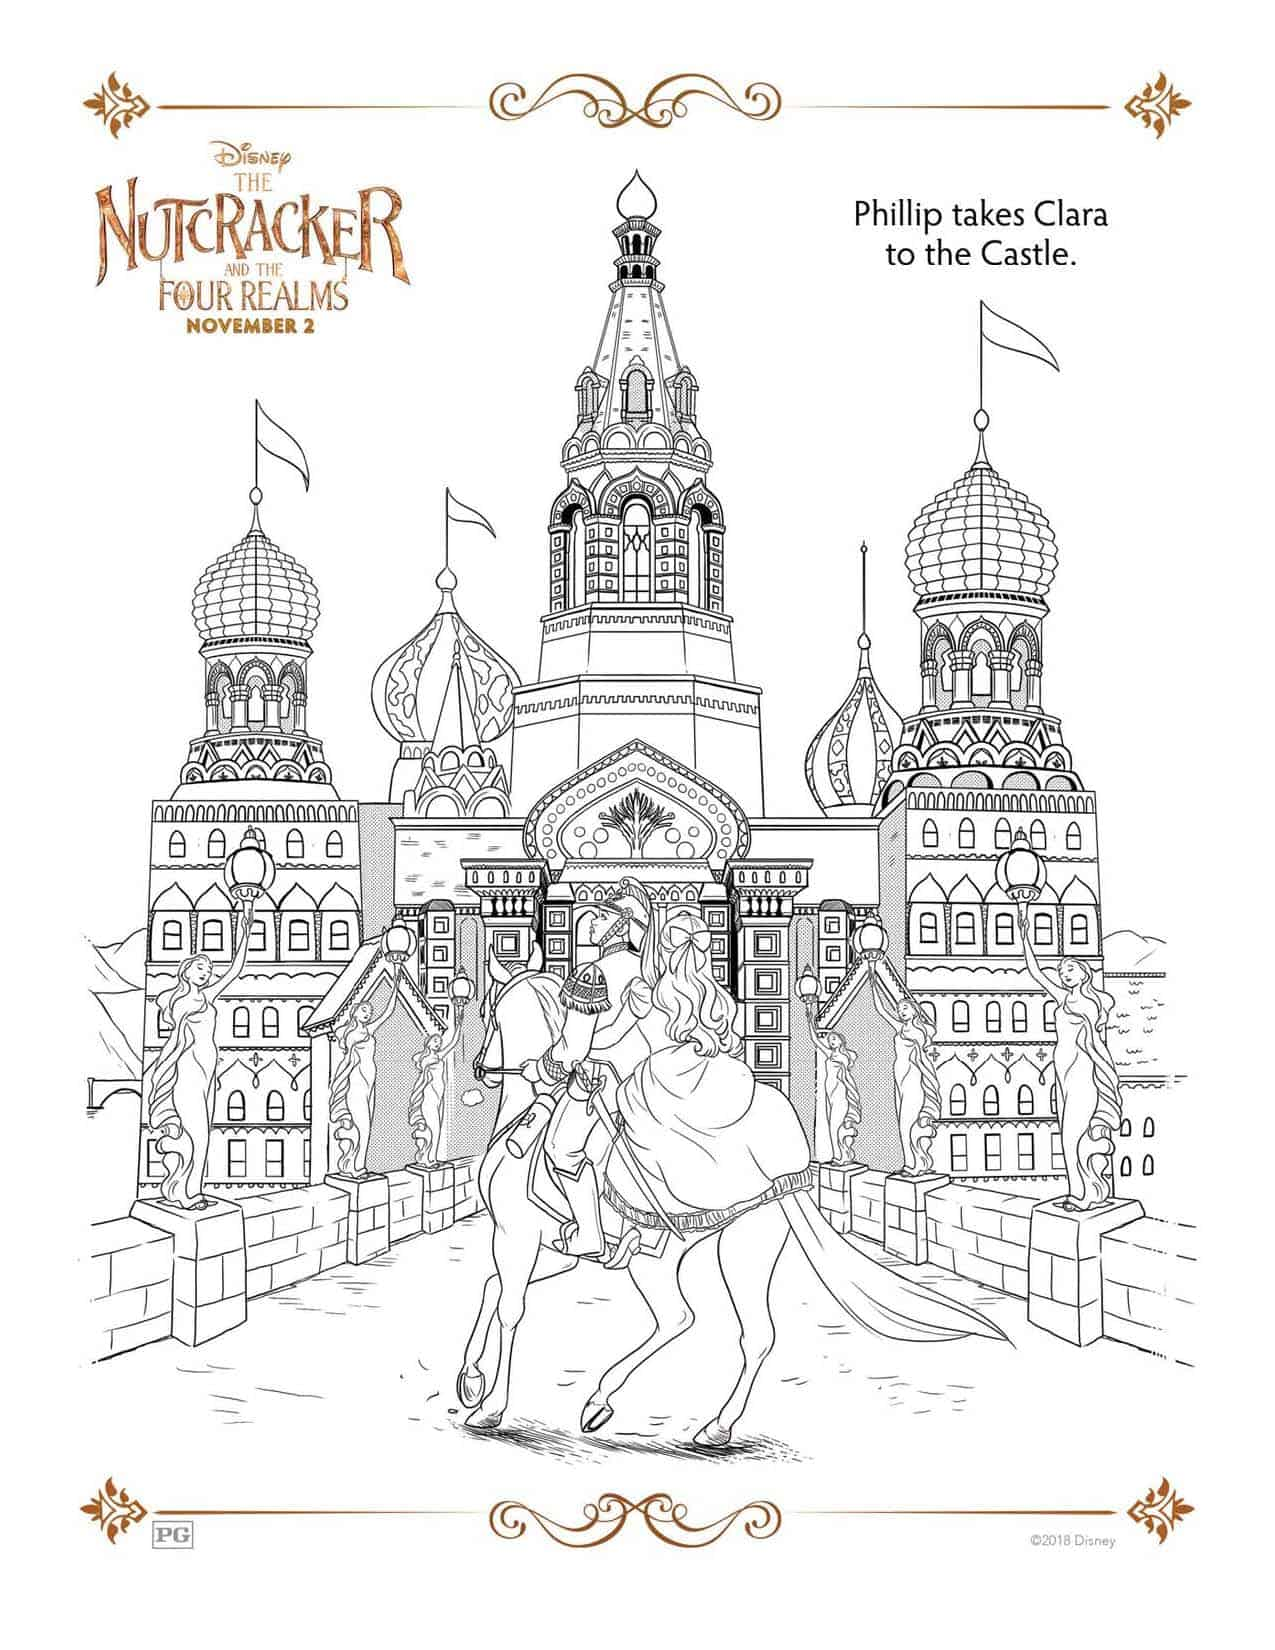 The Nutcracker And The Four Realms Free Coloring Sheets